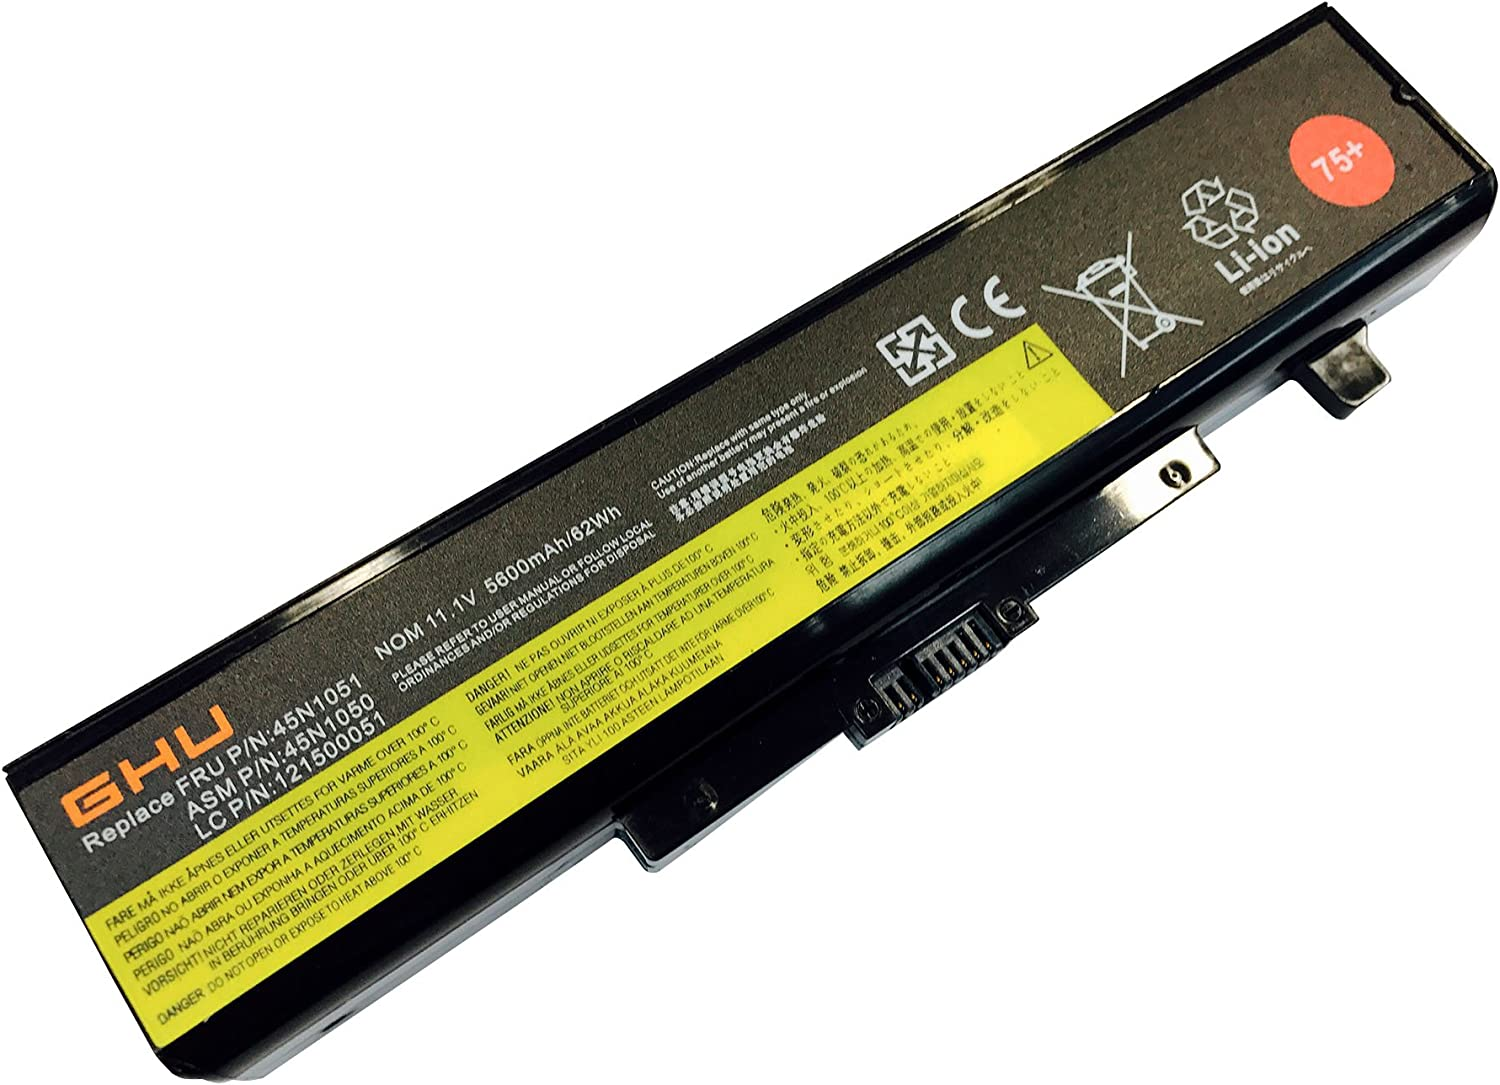 New GHU Battery 62 WH Replacement for L11S6Y01 45N1043 Compatible with Lenovo Thinkpad G580 Y580 G480 G485 G585 Y480 Y480N Y485 Y485N Y480P Y580 Y580N Y485P Z380 Z480 Y580P Z580 Z585 Z485 G700